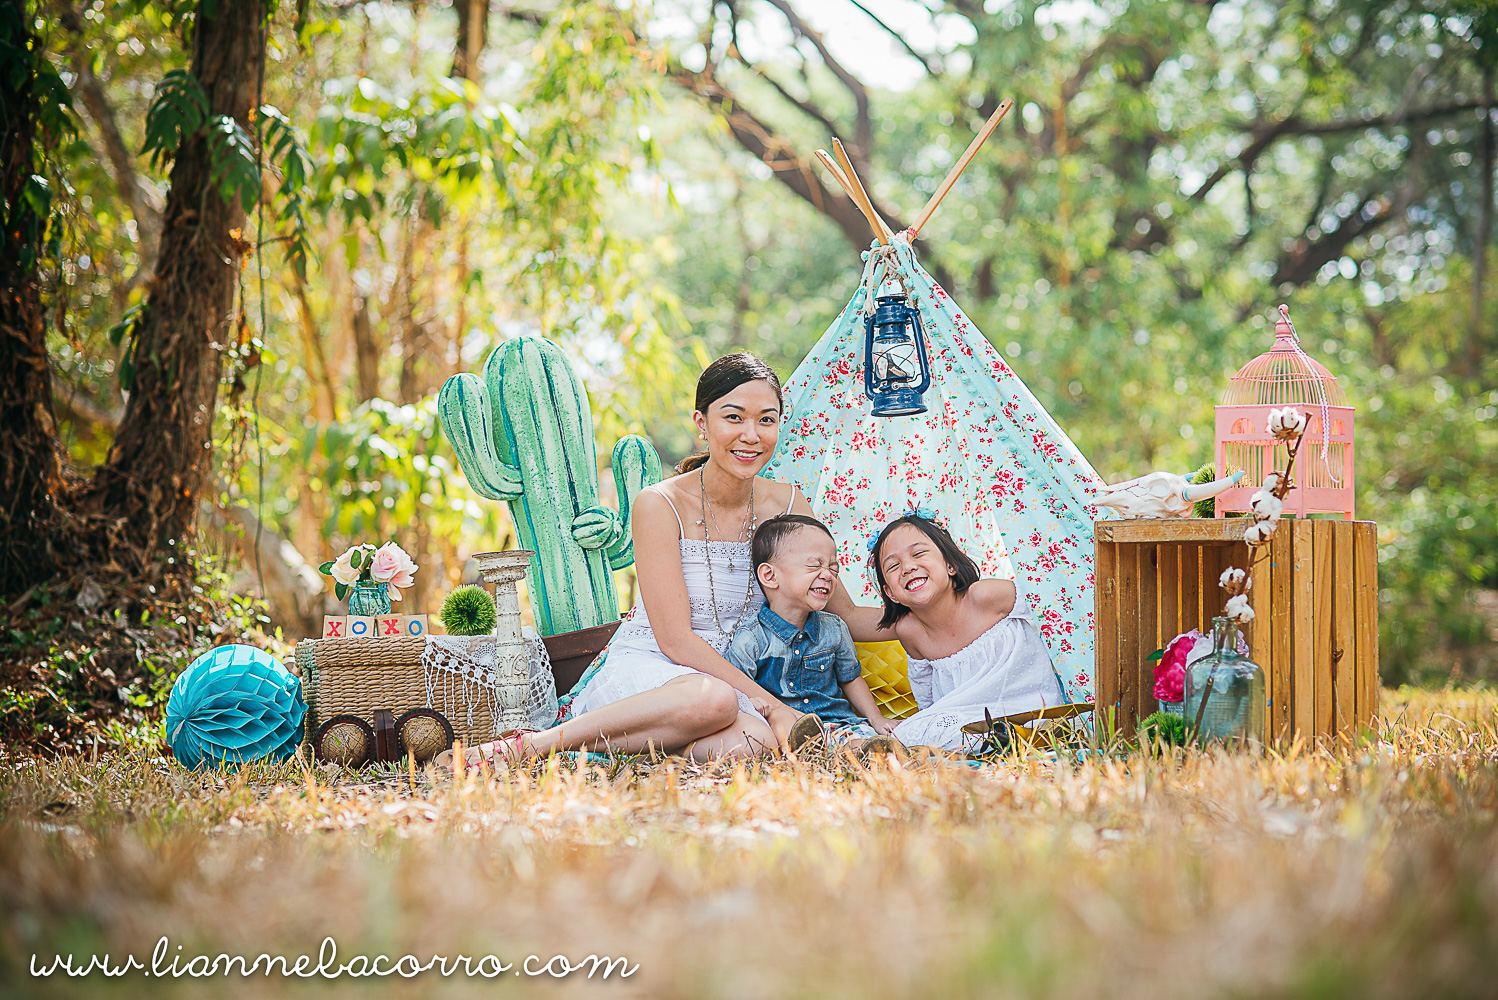 May 2016 - Geli - Family Portrait Photography - Lianne Bacorro - Something Pretty Manila-17